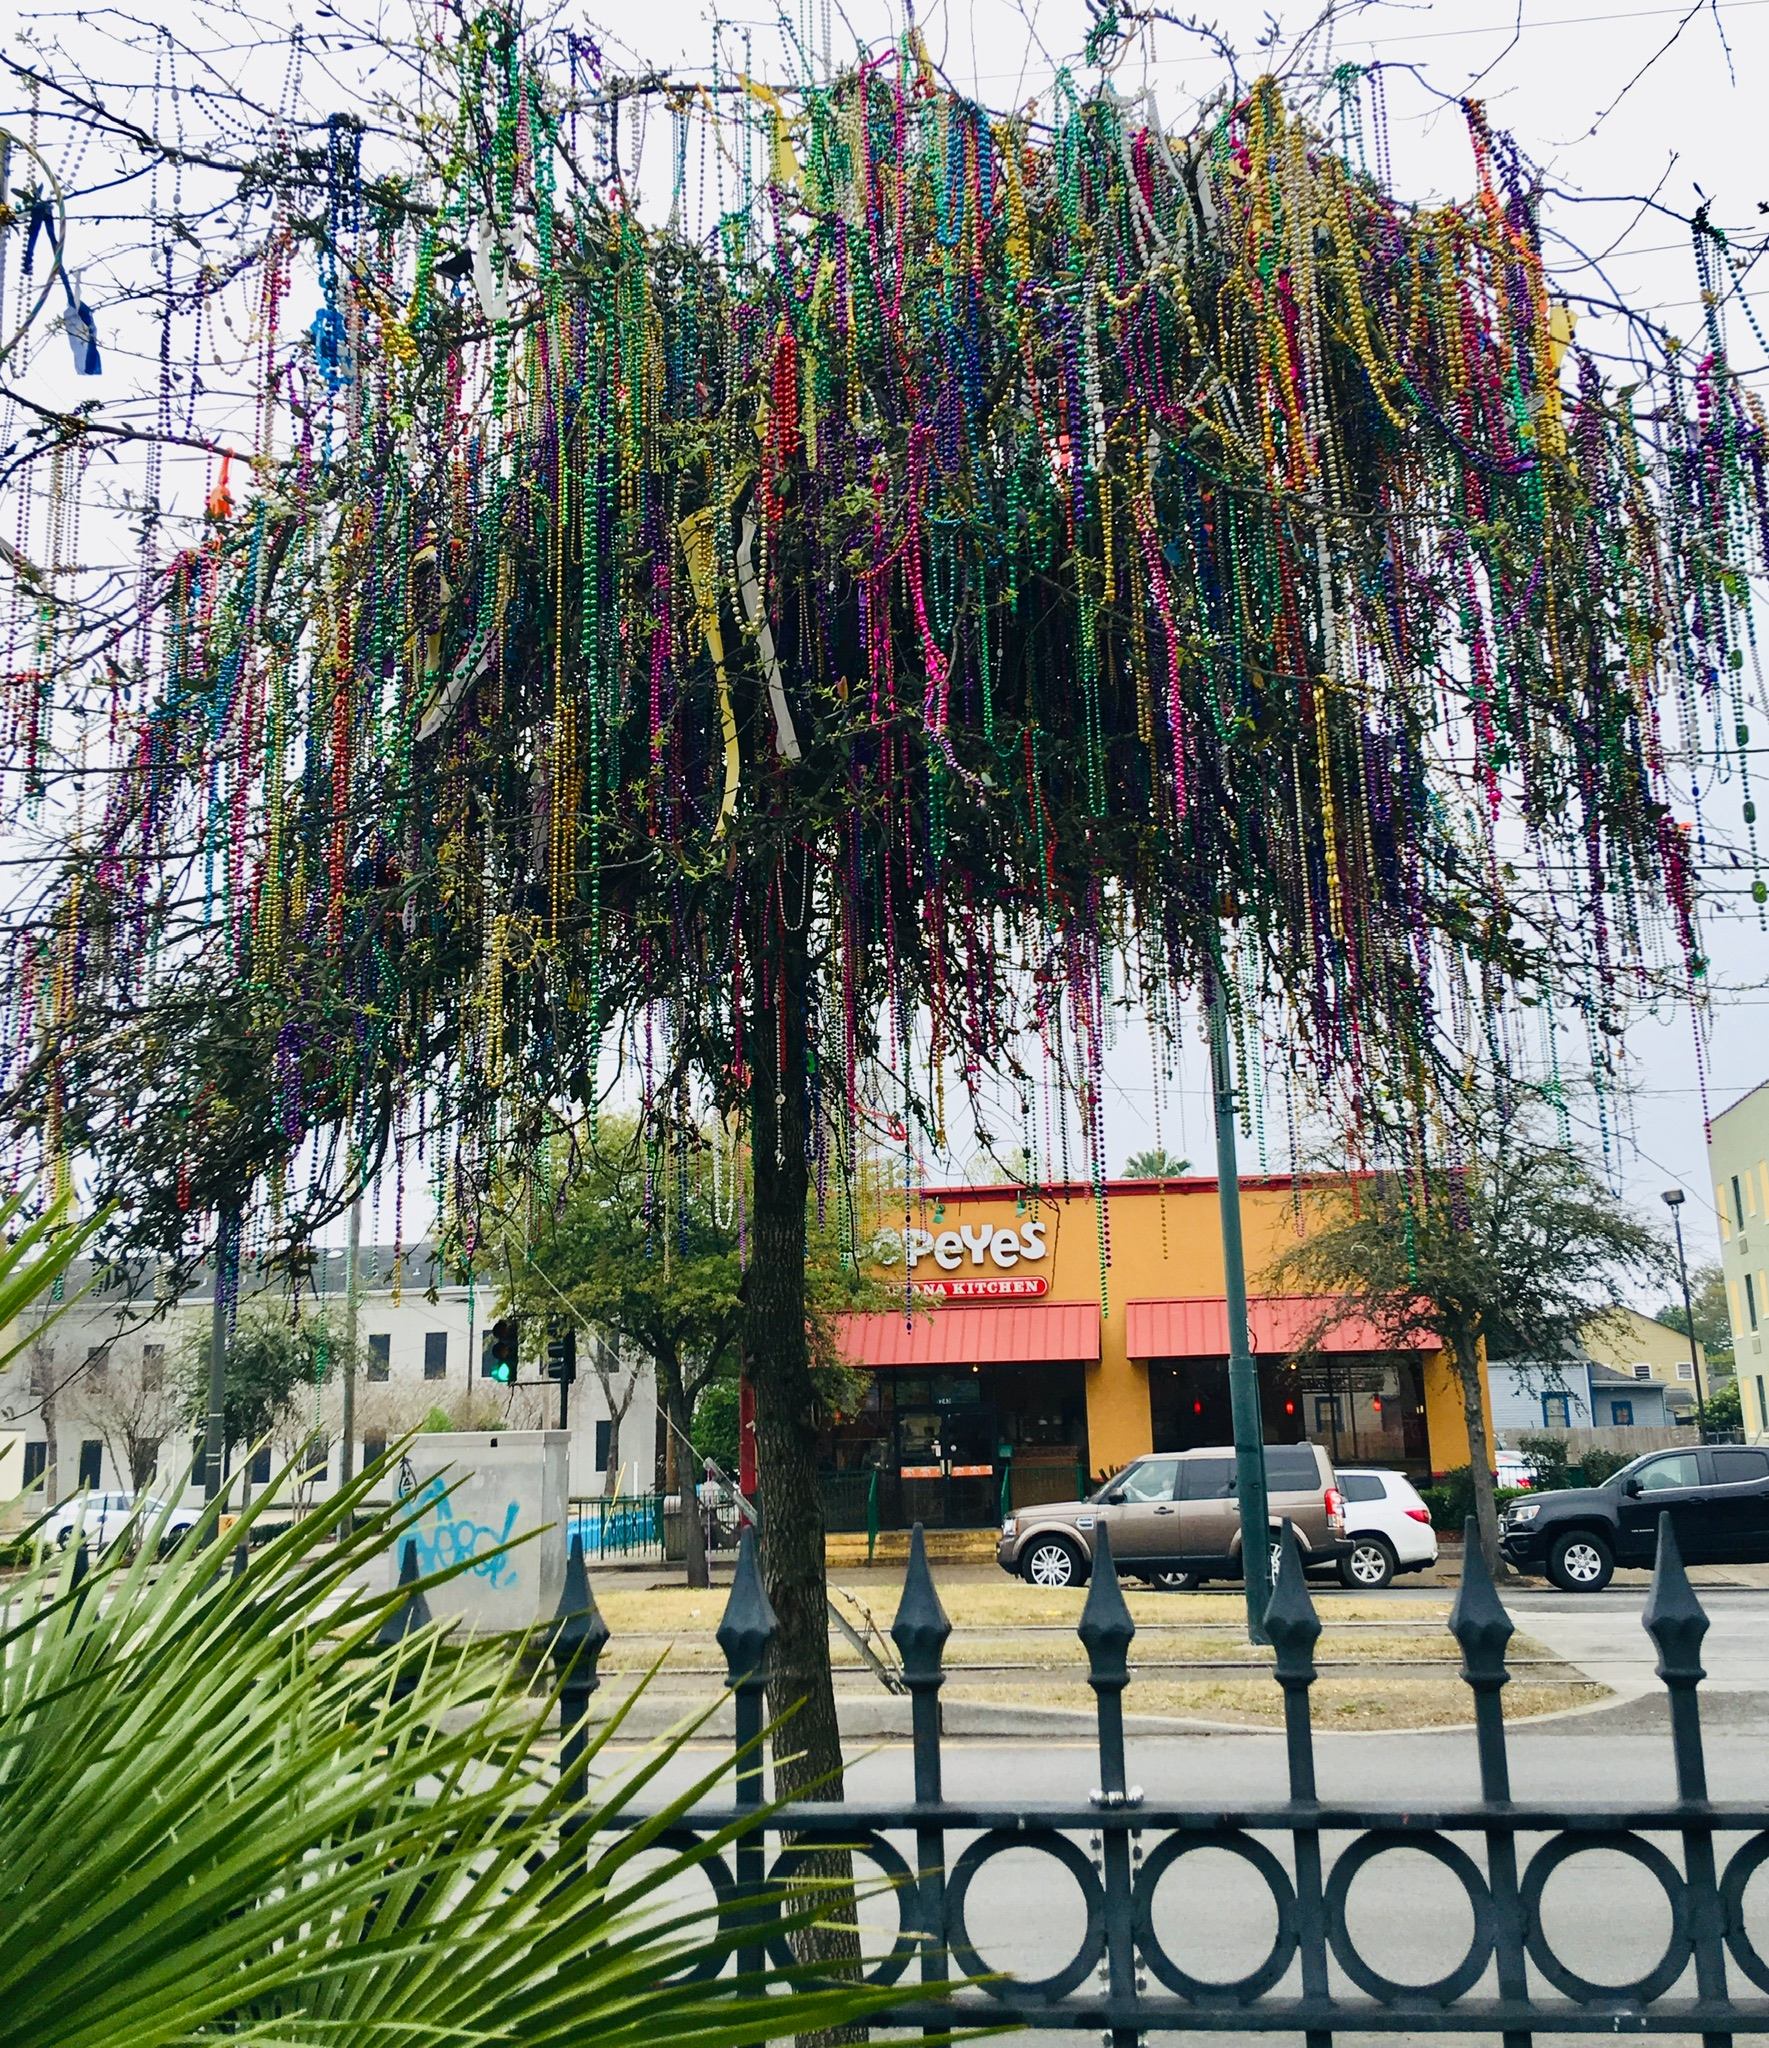 Last Year's Post Mardi Gras Blog… how times have changed!